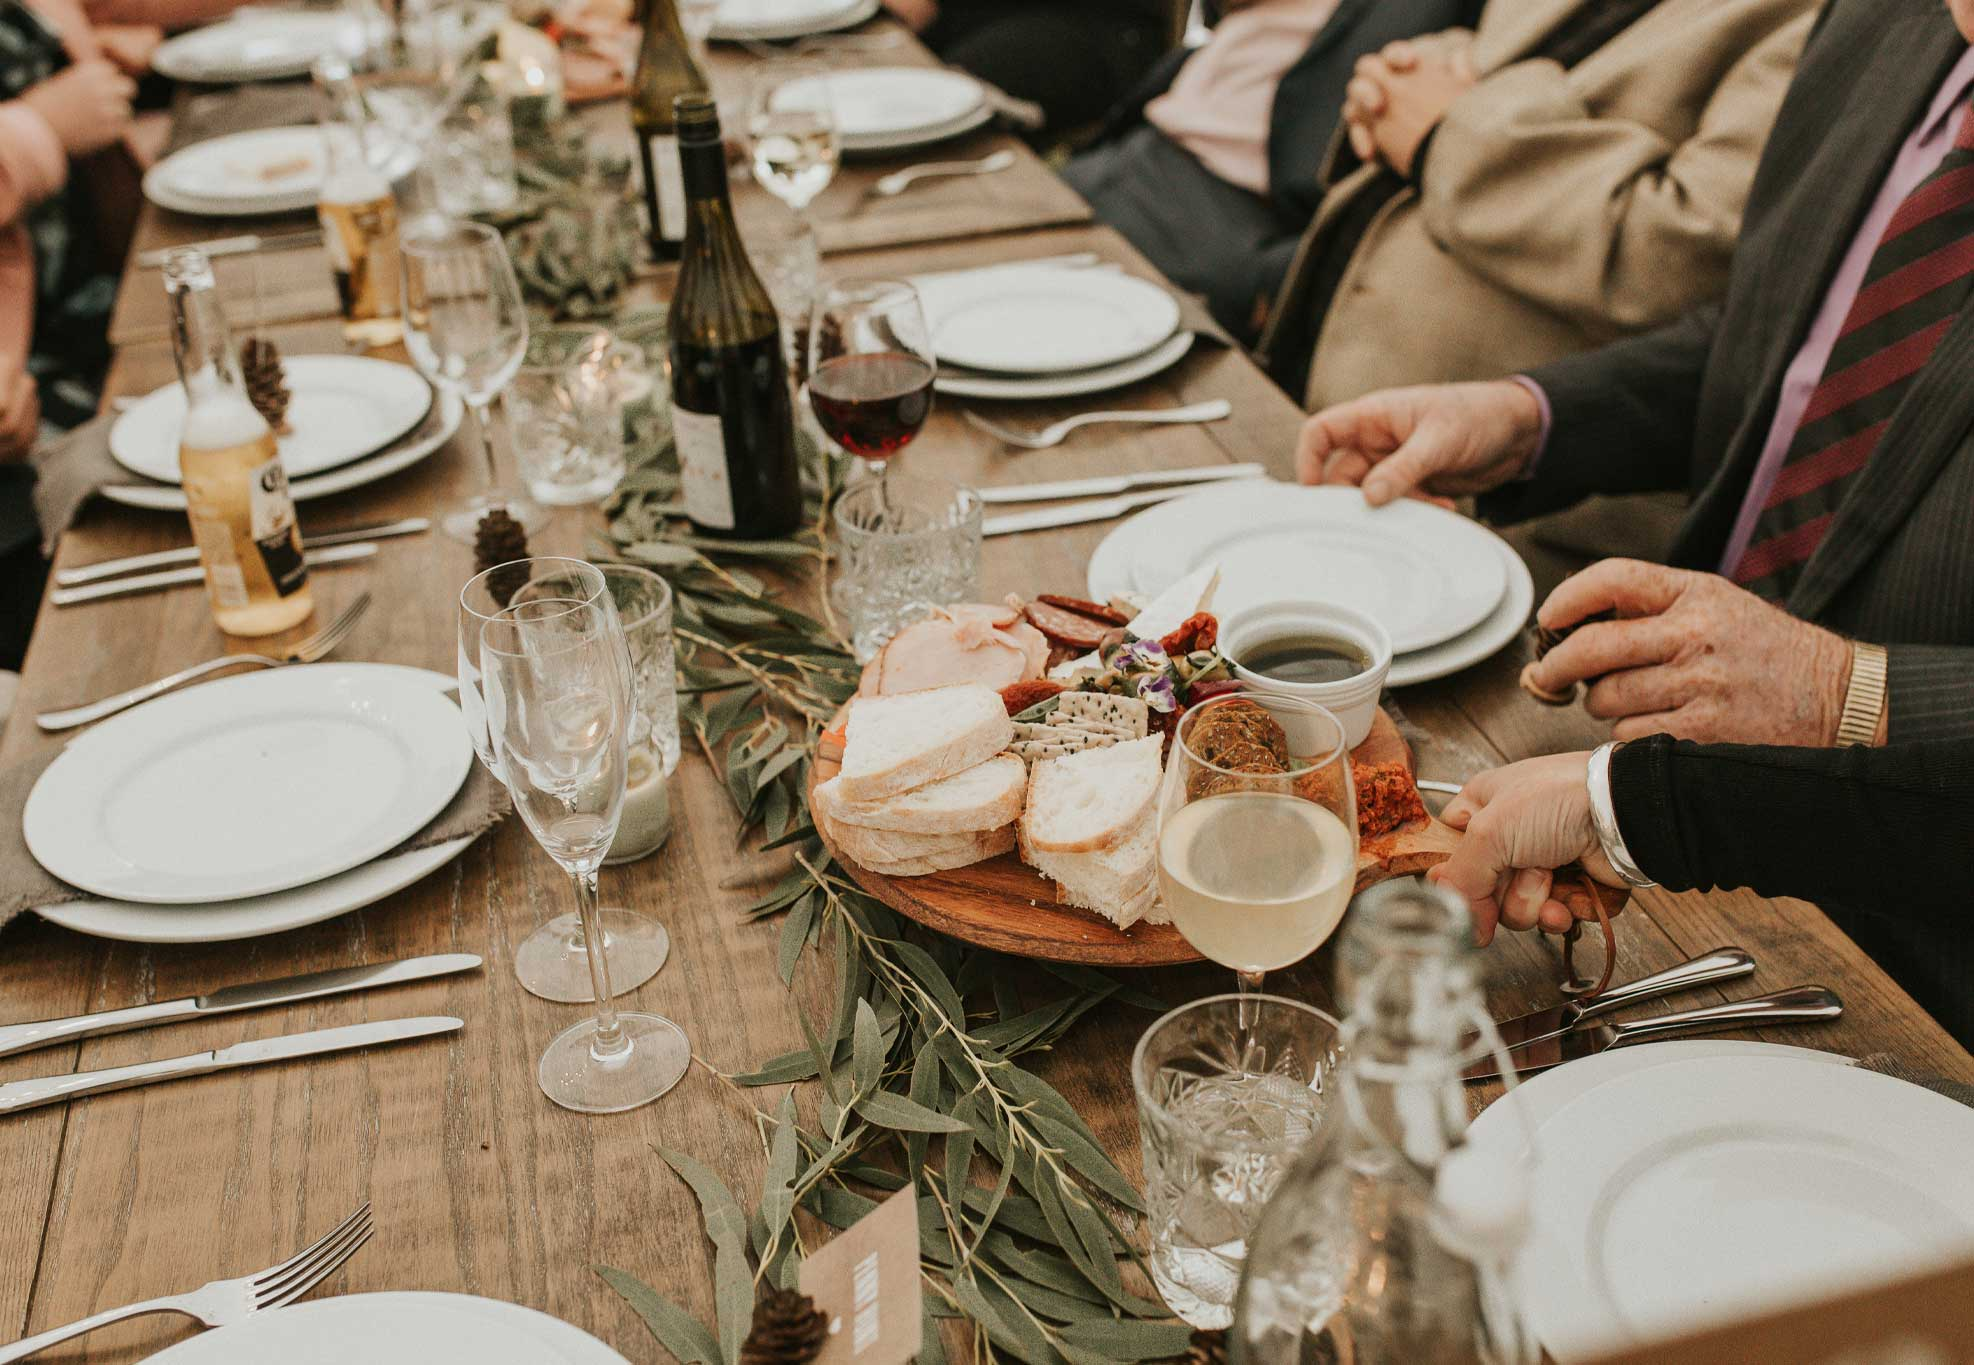 silk-estate-marquee-weddings-and-events-styling-and-hire-crockery-entree-plate-23cm-2